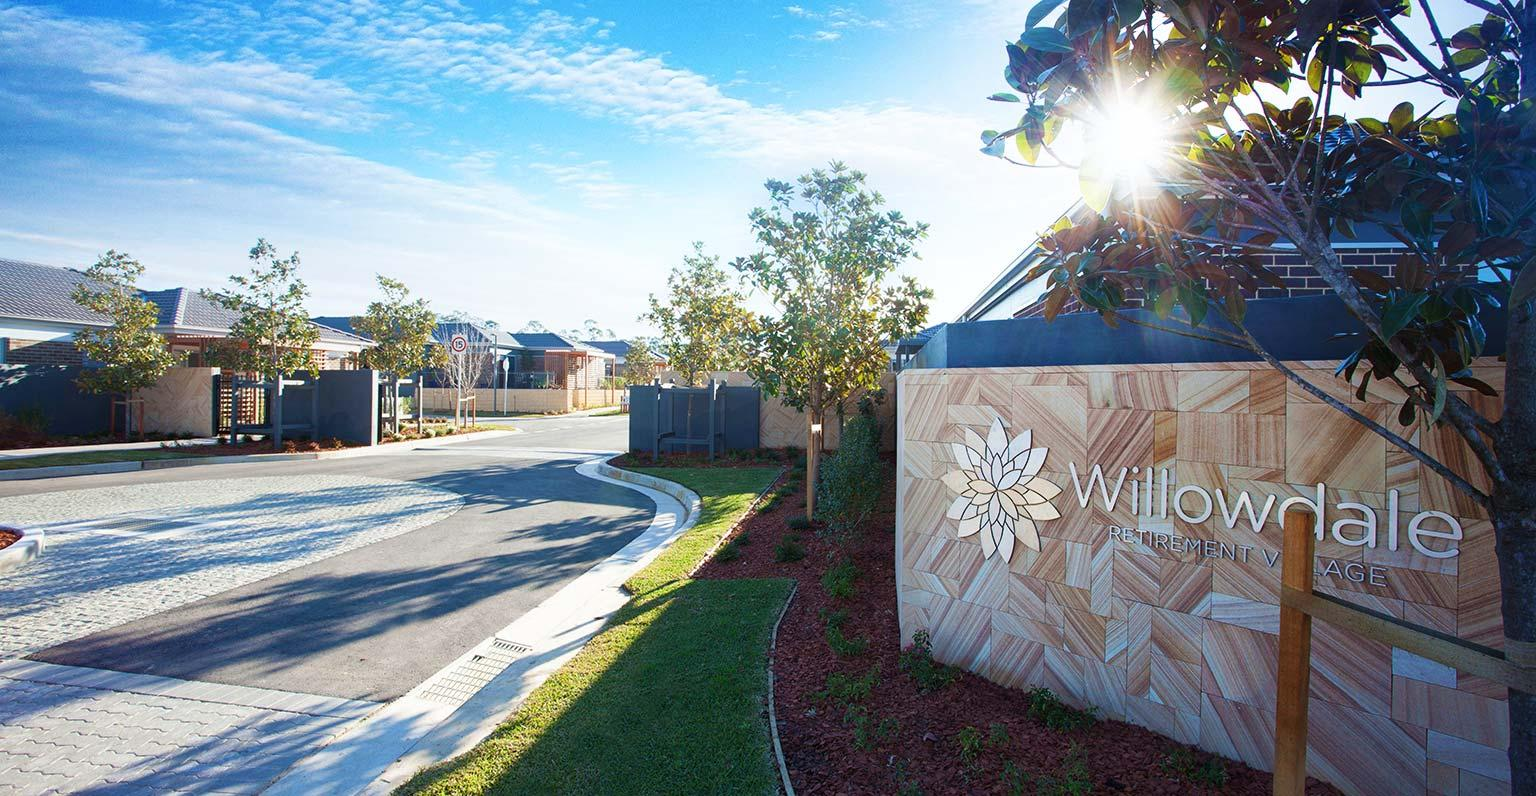 Independent Living Villas by MJH Multi, Willowdale Estate, NSW